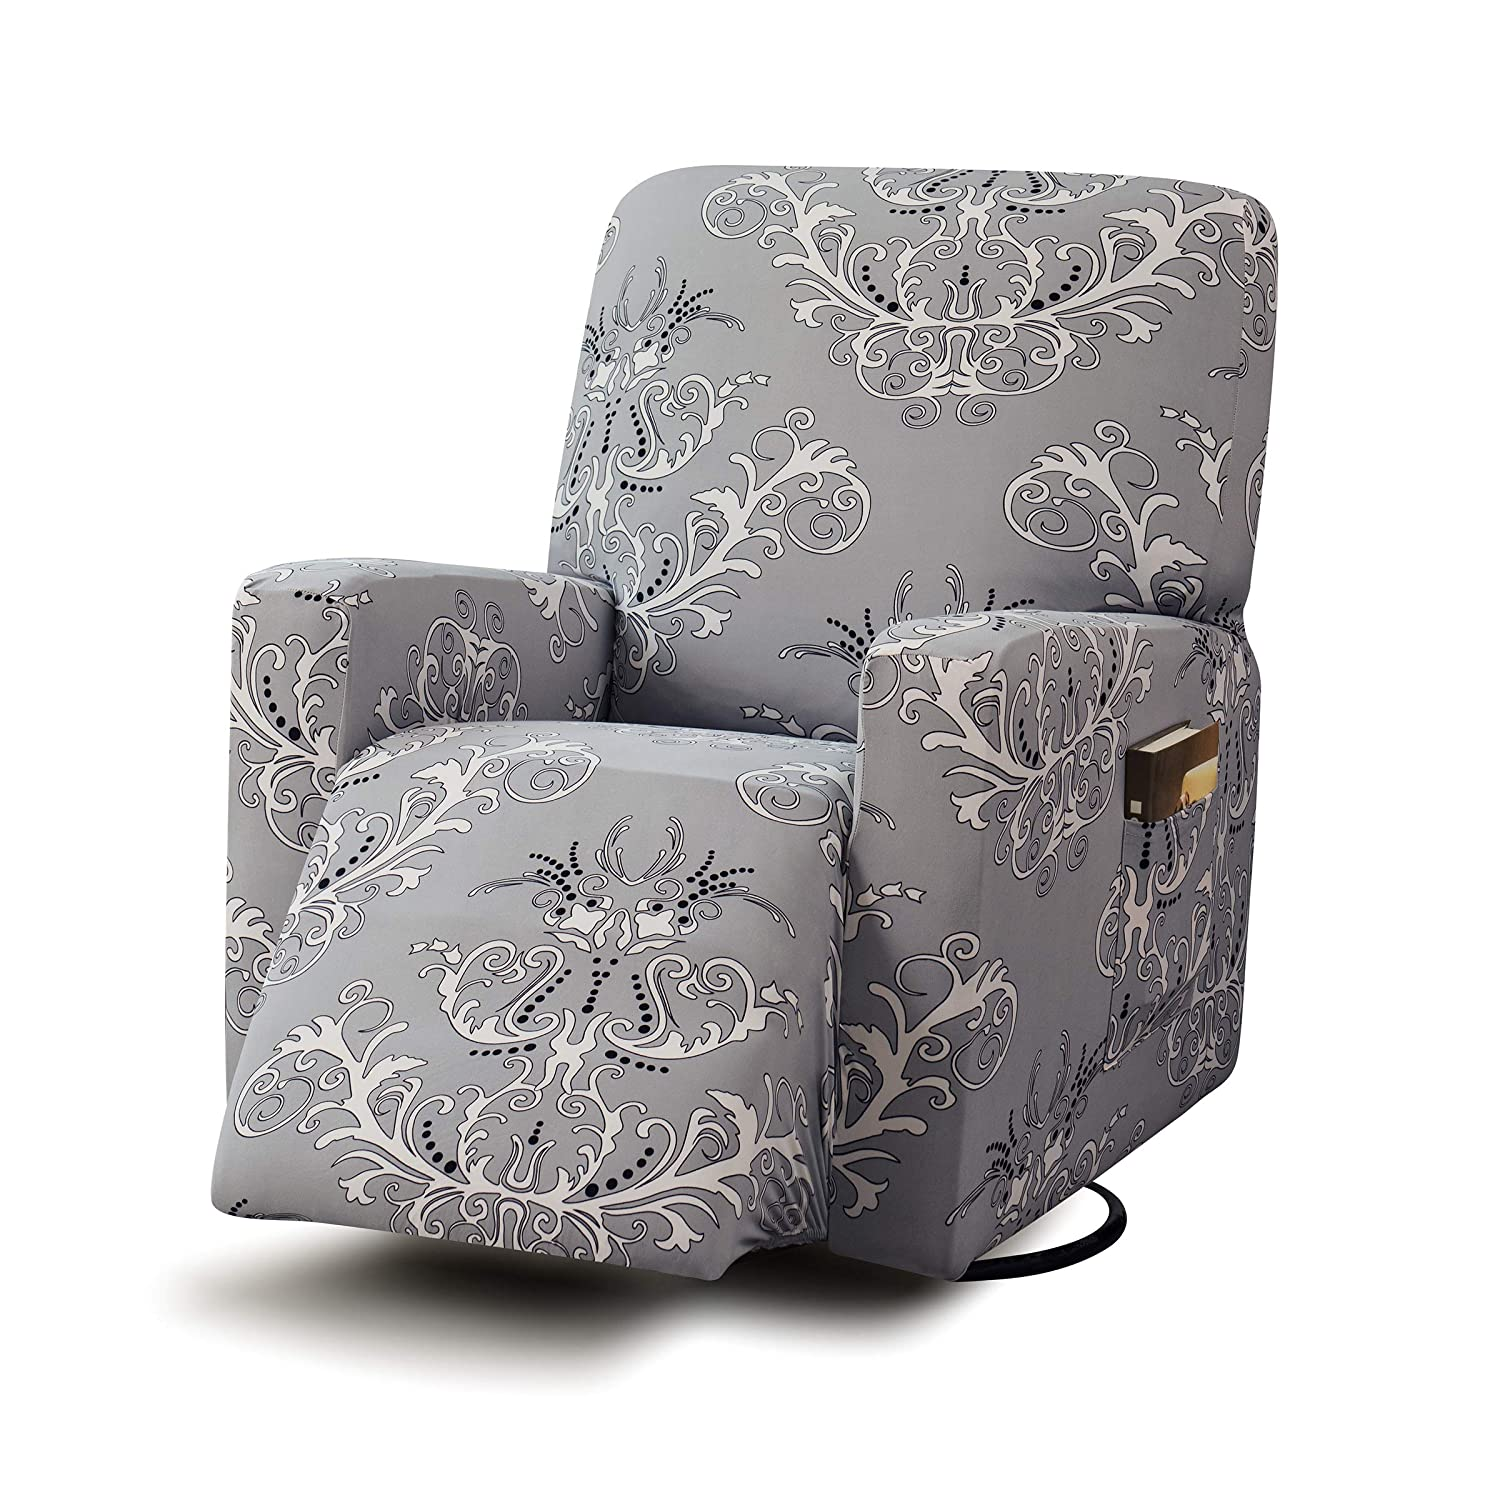 Remarkable Tikami Stretch Printed Recliner Chair Covers Washable Sofa Slipcovers Furniture Protector With Remote Pocket For Pets And Kids Gray Print Ibusinesslaw Wood Chair Design Ideas Ibusinesslaworg